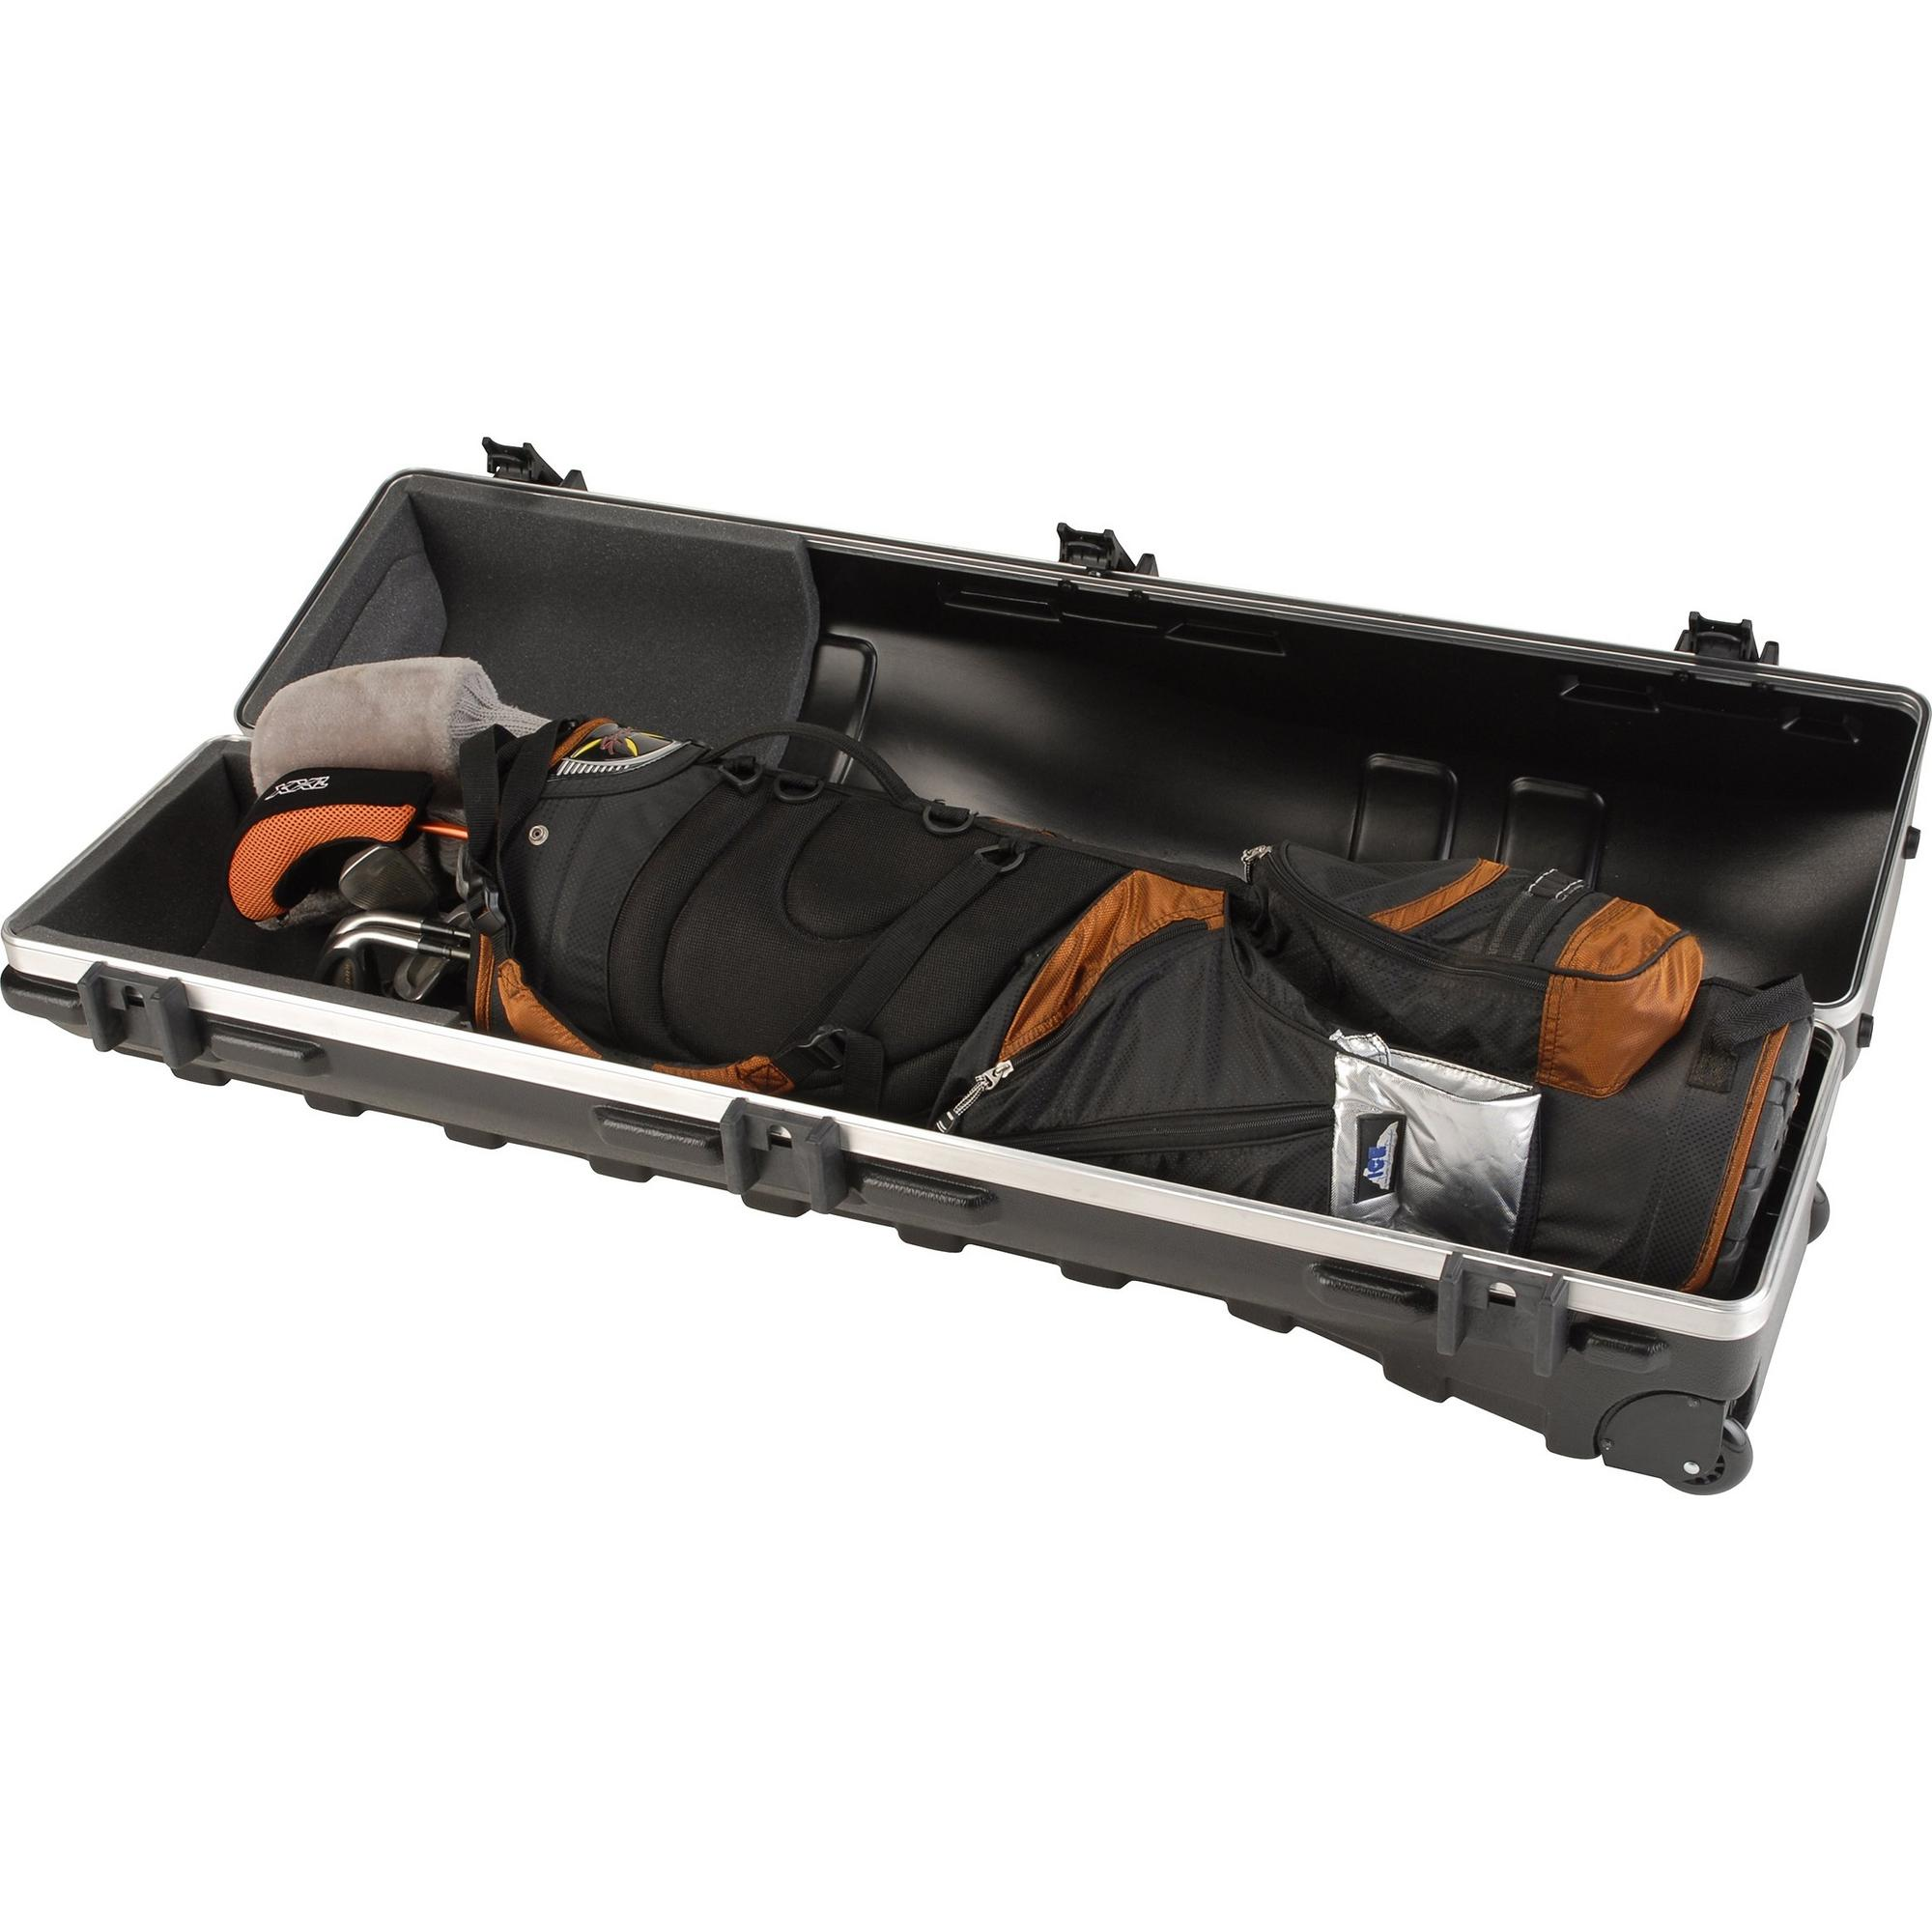 SKB 14IN Deluxe Travel Cover